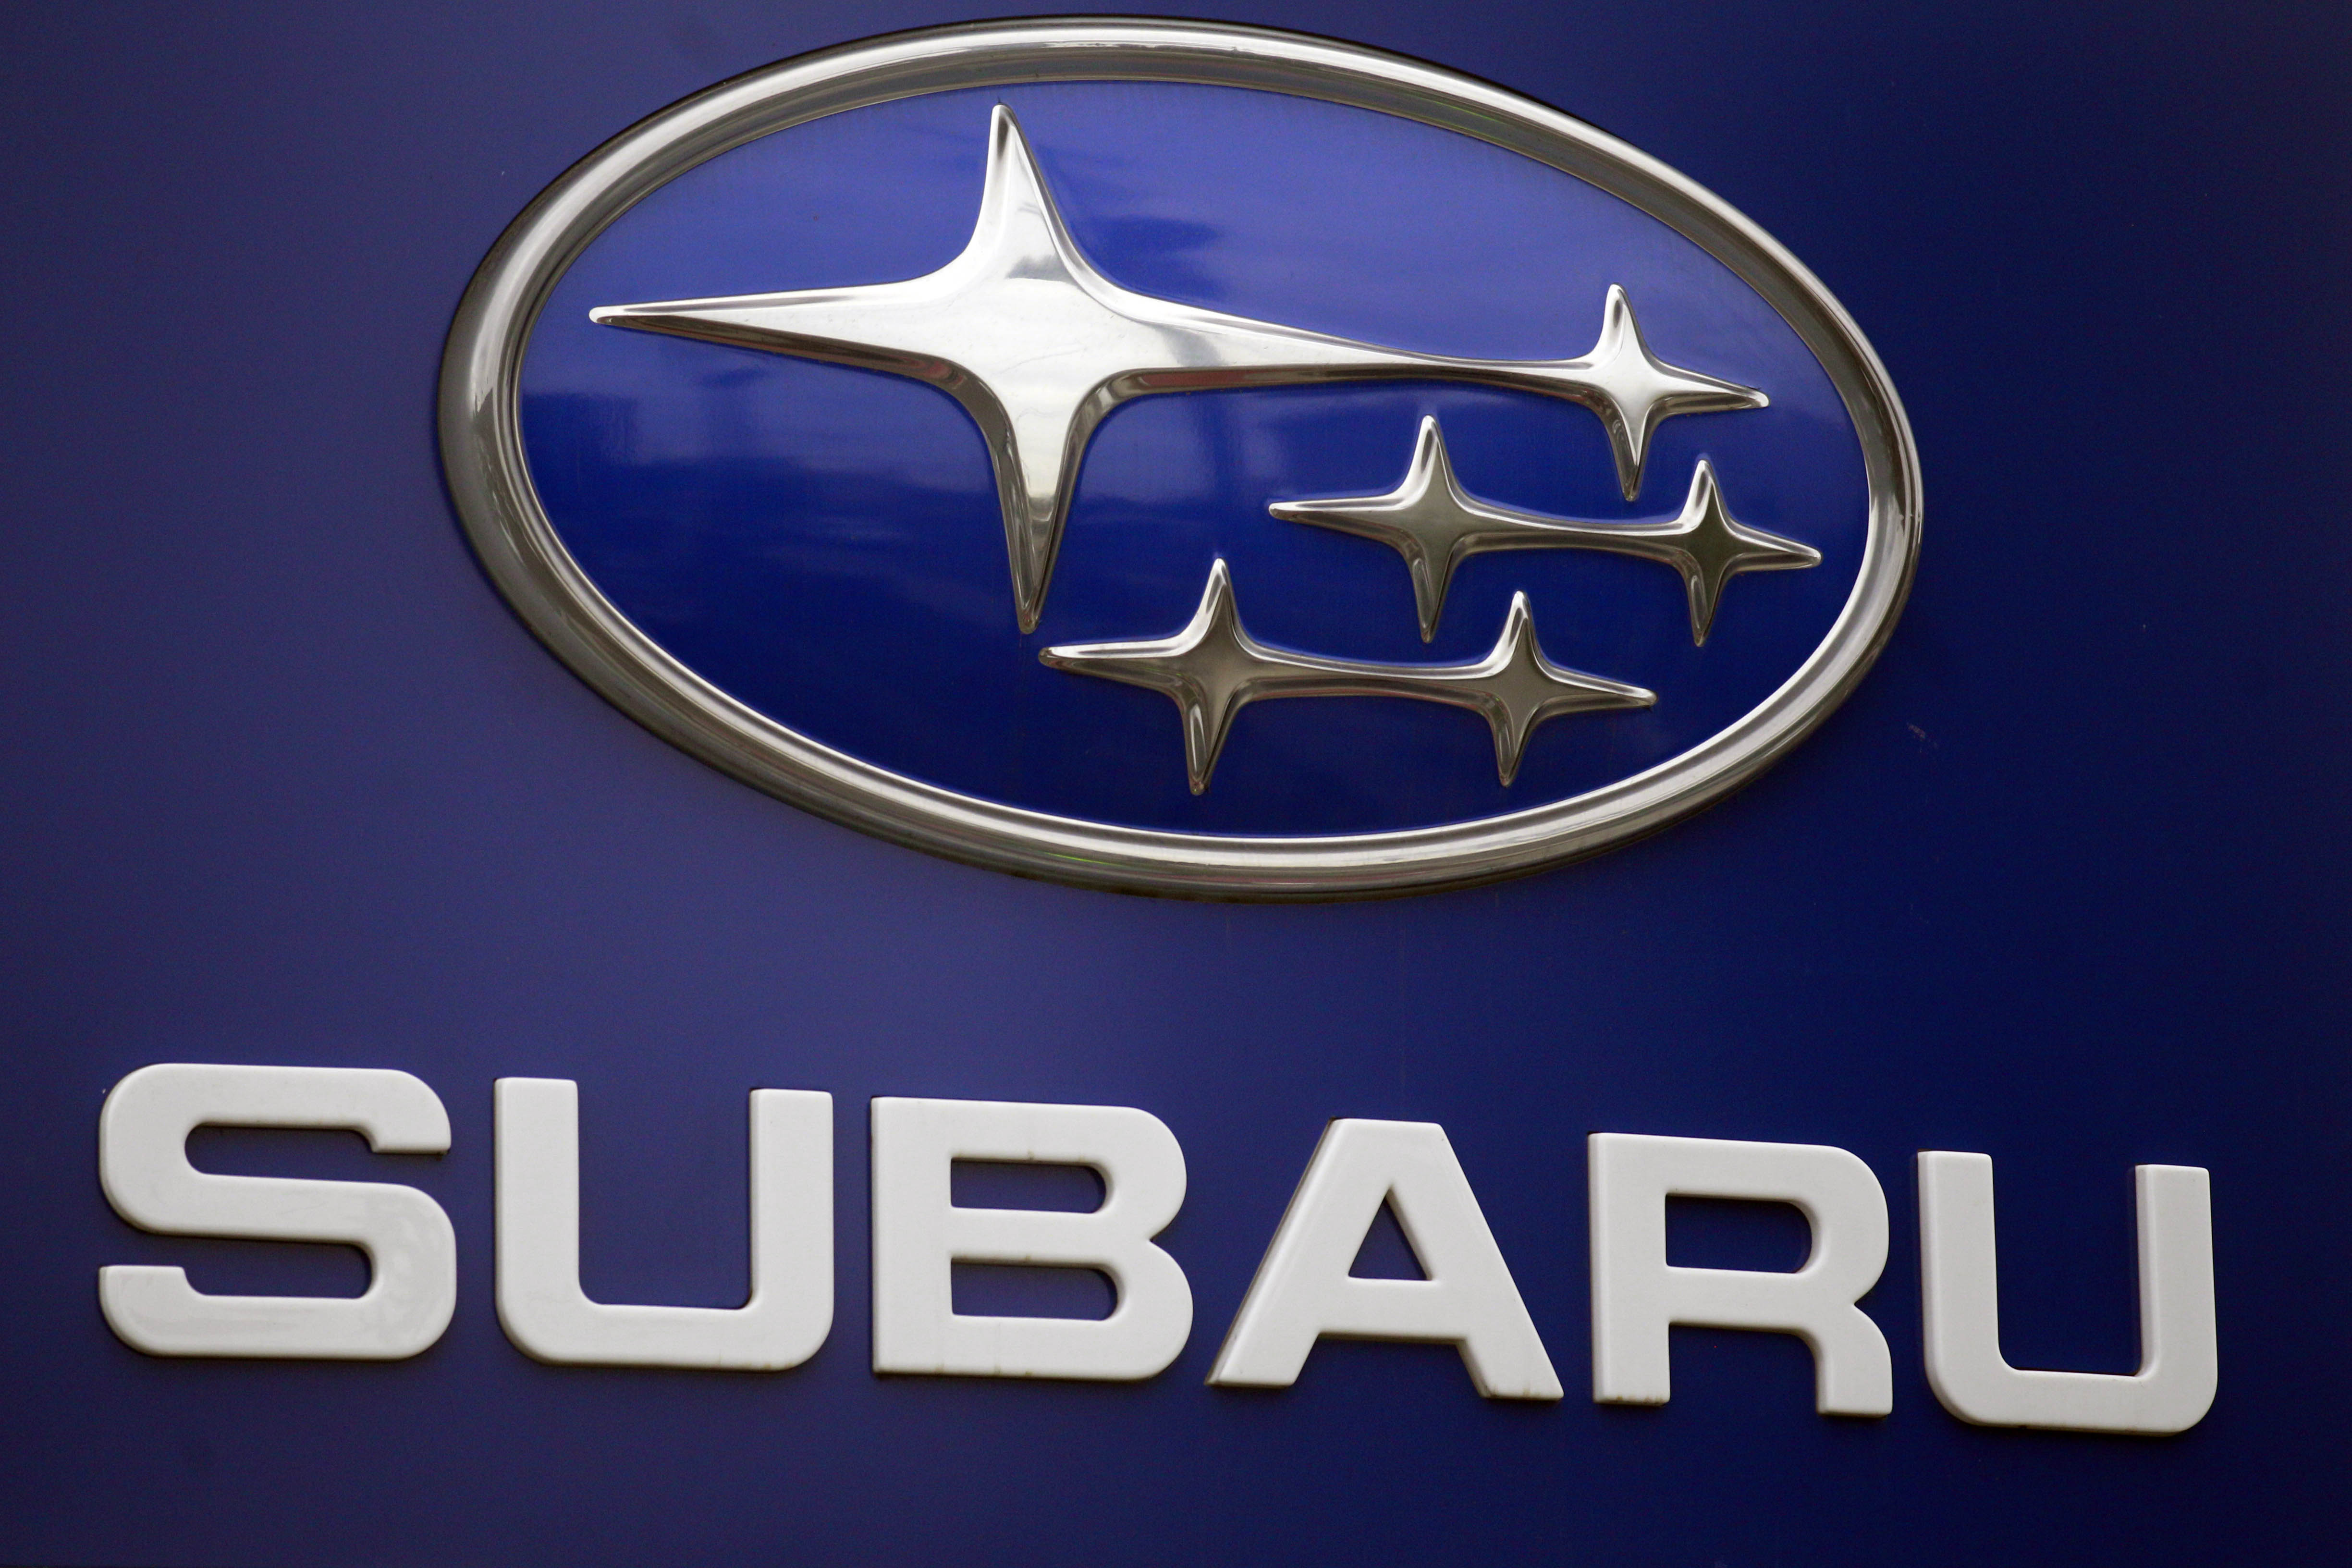 FILE - In this Aug. 31, 2011, file photo, a Subaru logo is displayed on a sign at a dealer's lot, in Portland, Ore. Subaru is recalling more than 660,000 cars and SUVs because the brake lines can rust and leak fluid, and that can cause longer stopping distances. For about half the vehicles, it's the second recall for the same problem. (AP Photo/Rick Bowmer, File)